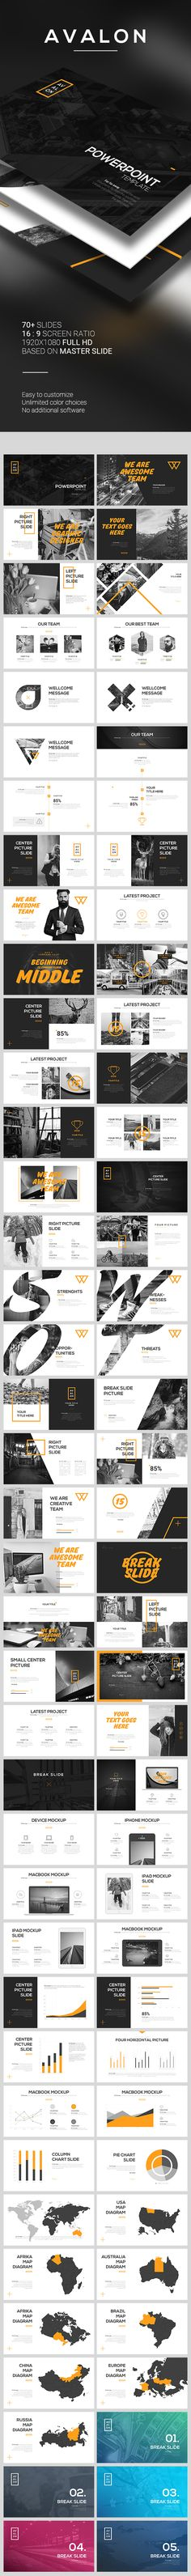 AVALON PowerPoint Template - PowerPoint Templates Presentation Templates